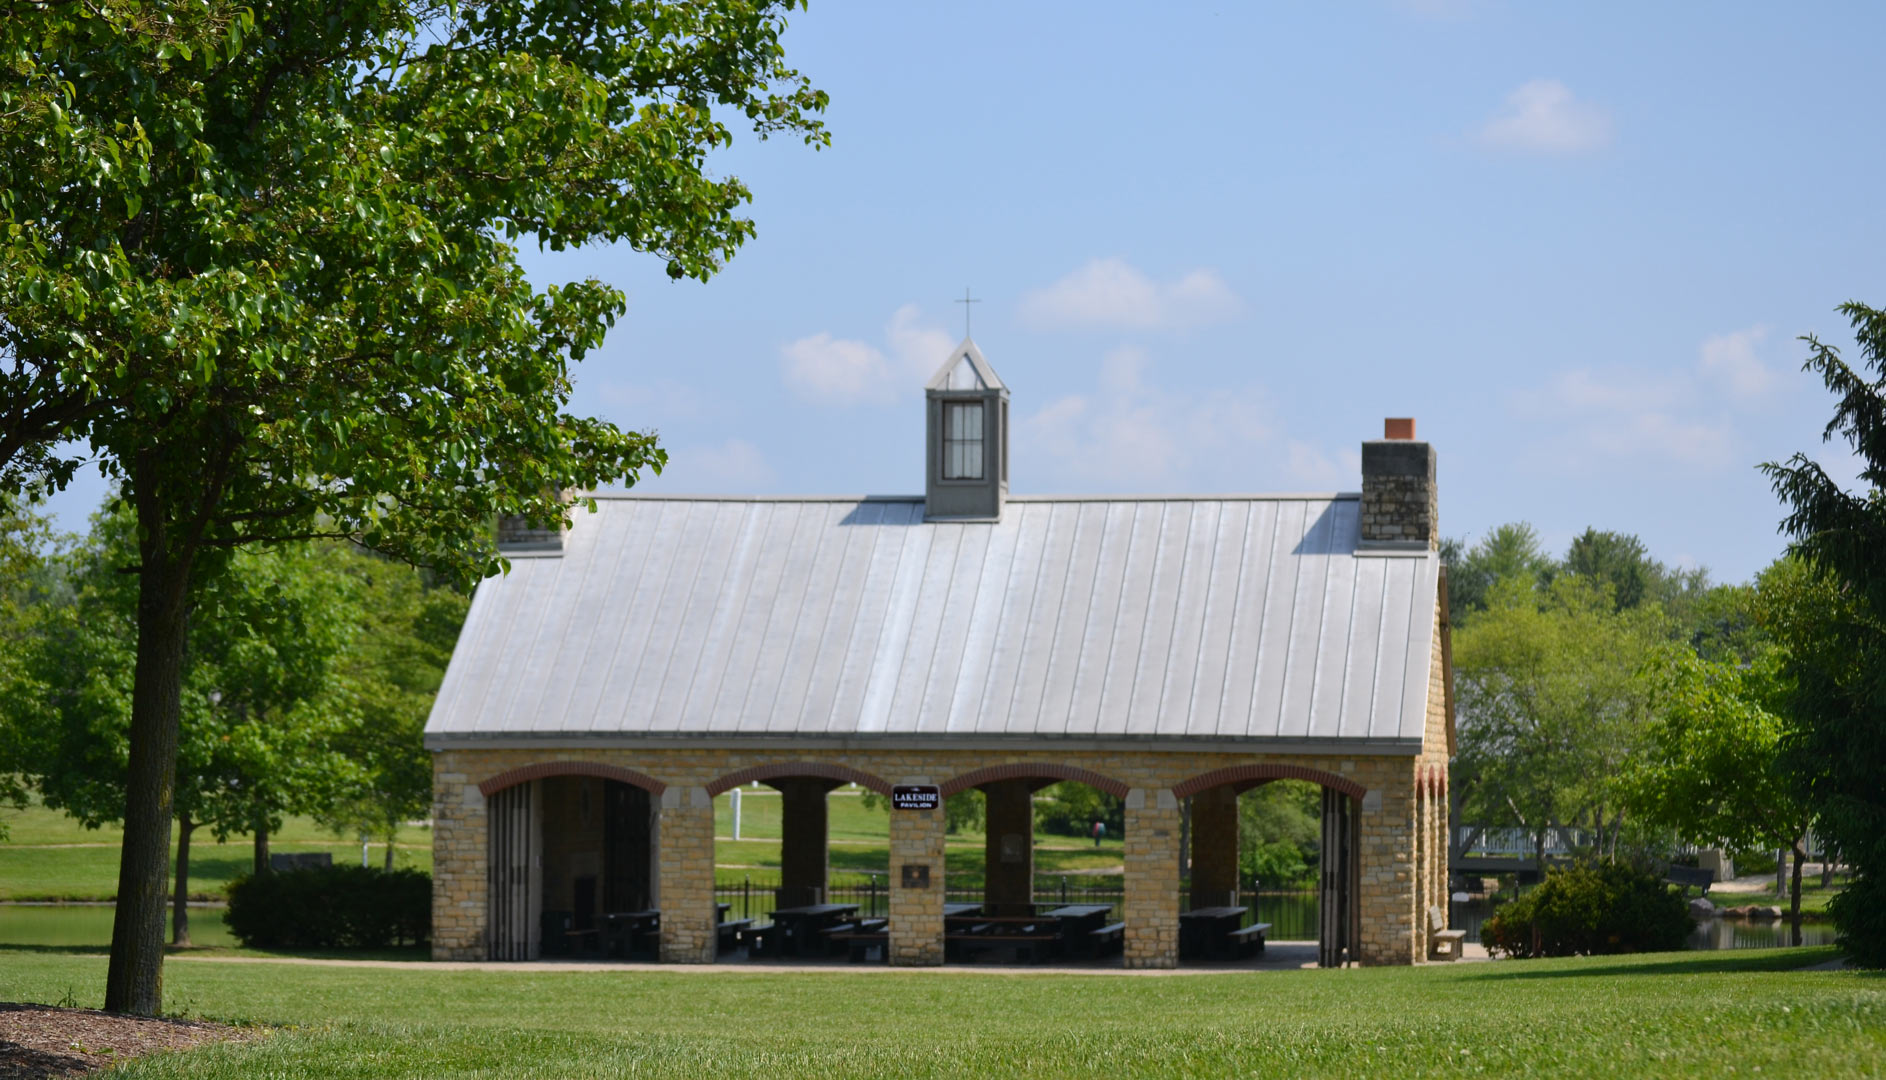 Gallery Homestead Metro Parks Central Ohio Park System